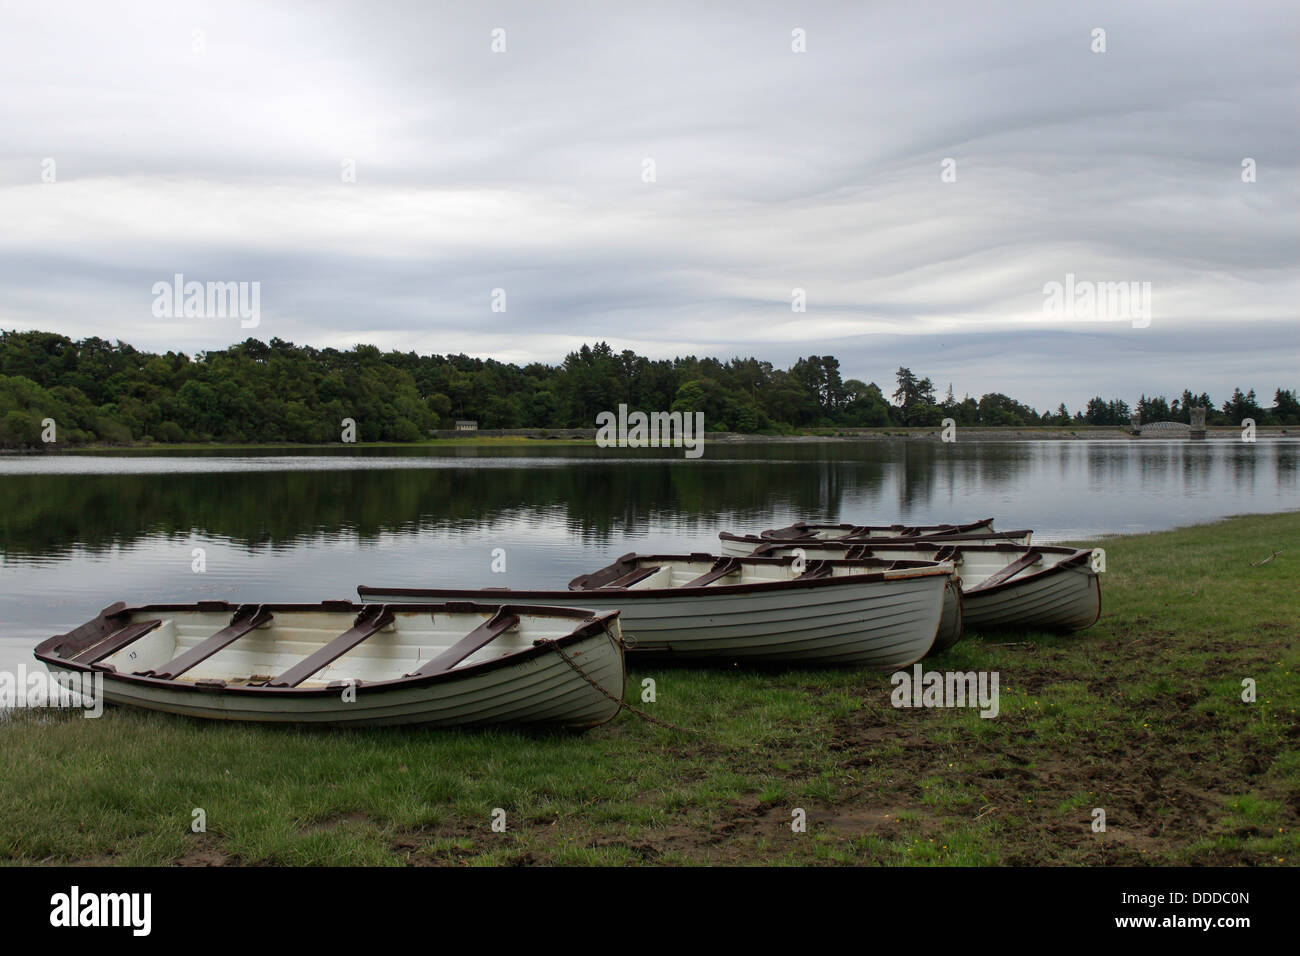 Boats on River Bank, Wicklow, Ireland - Stock Image